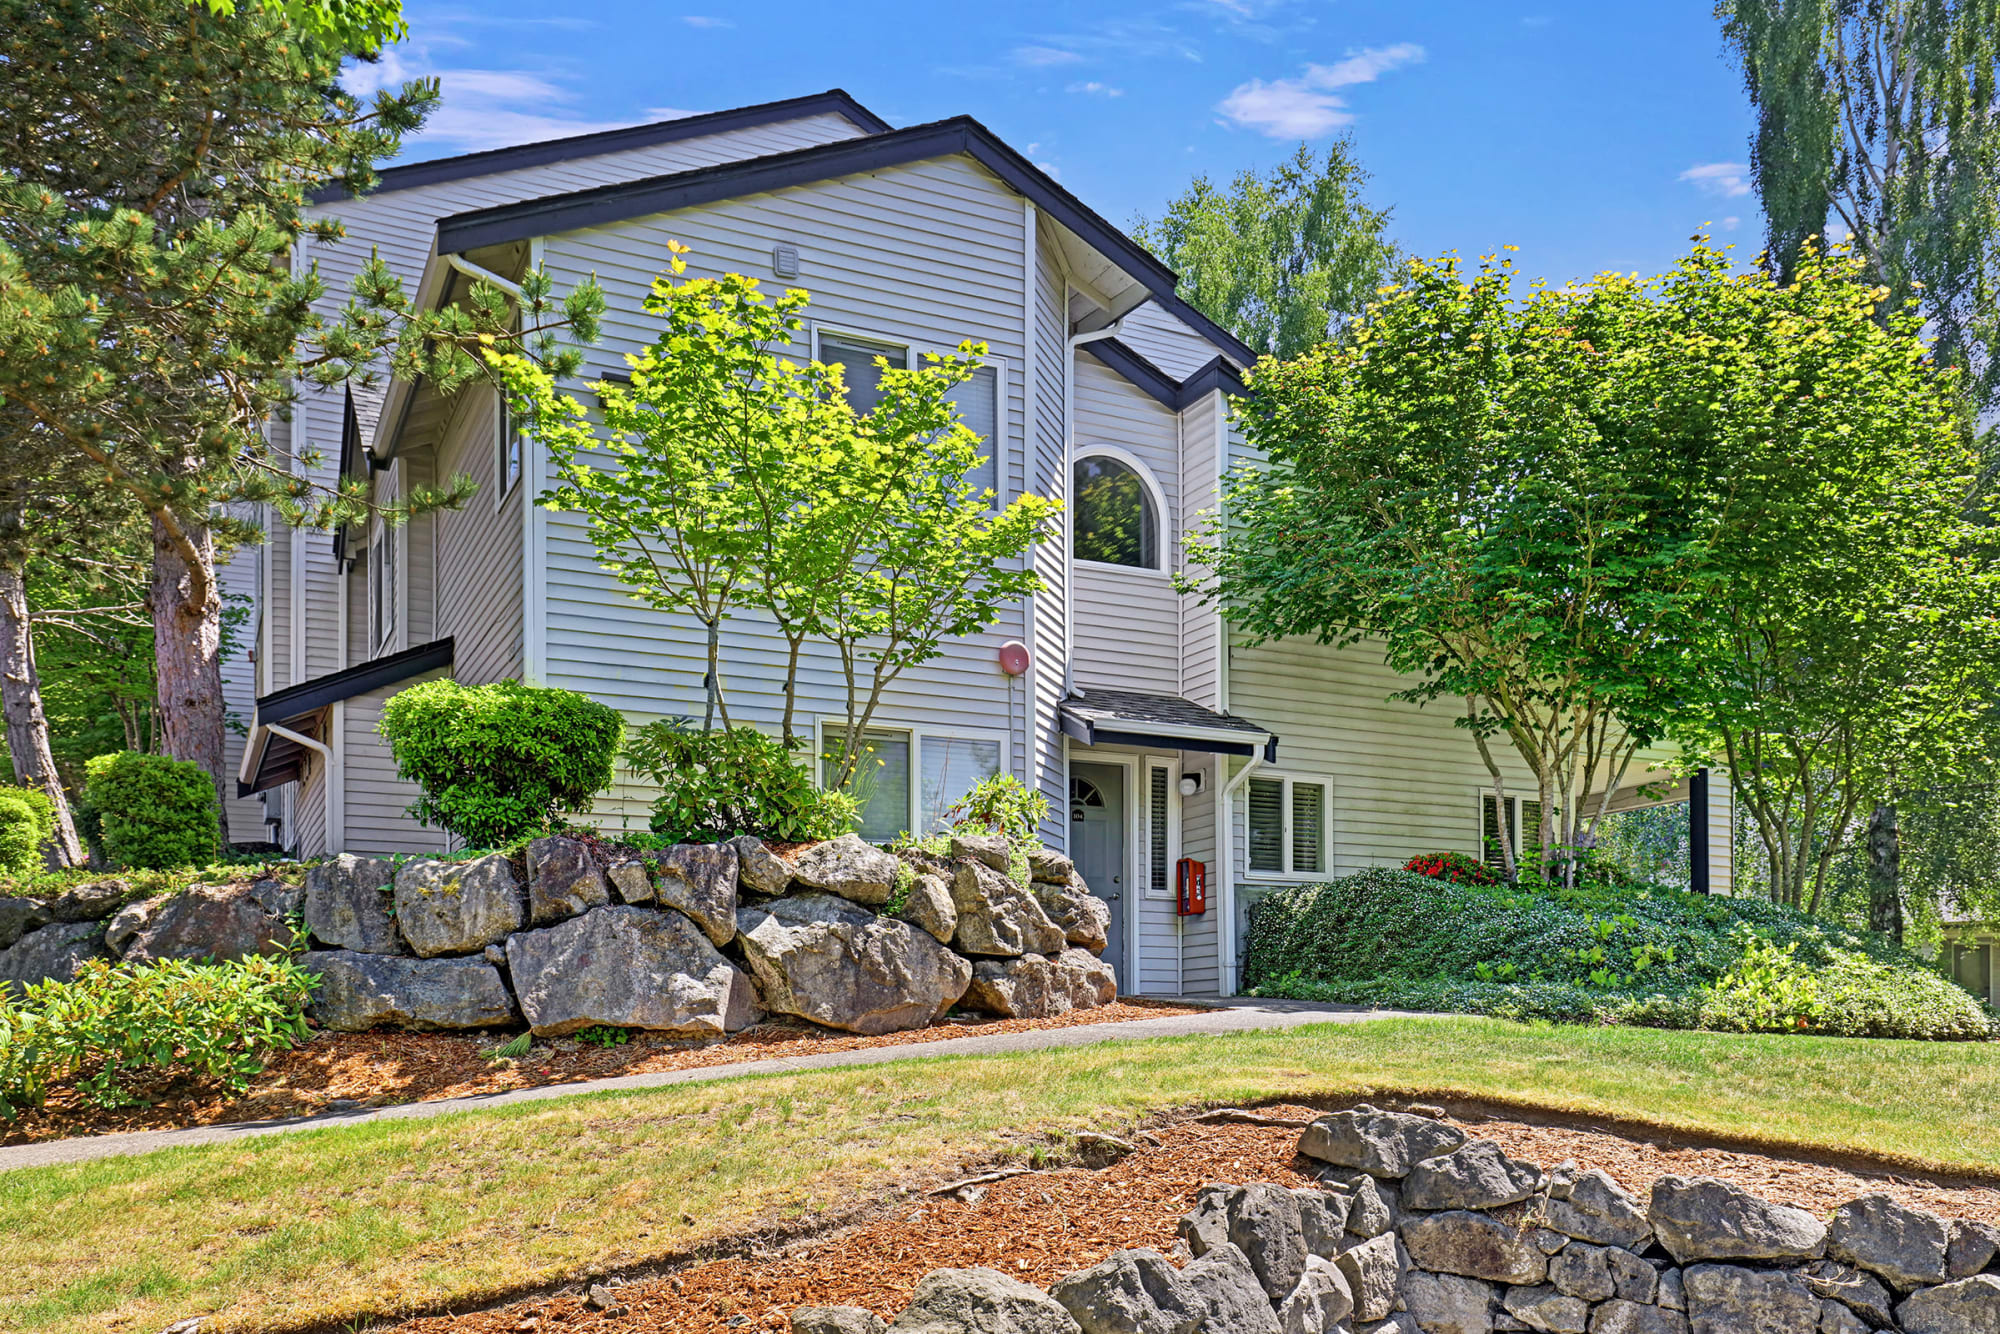 Thoughtfully maintained exterior and grounds at Cascade Ridge in Silverdale, Washington